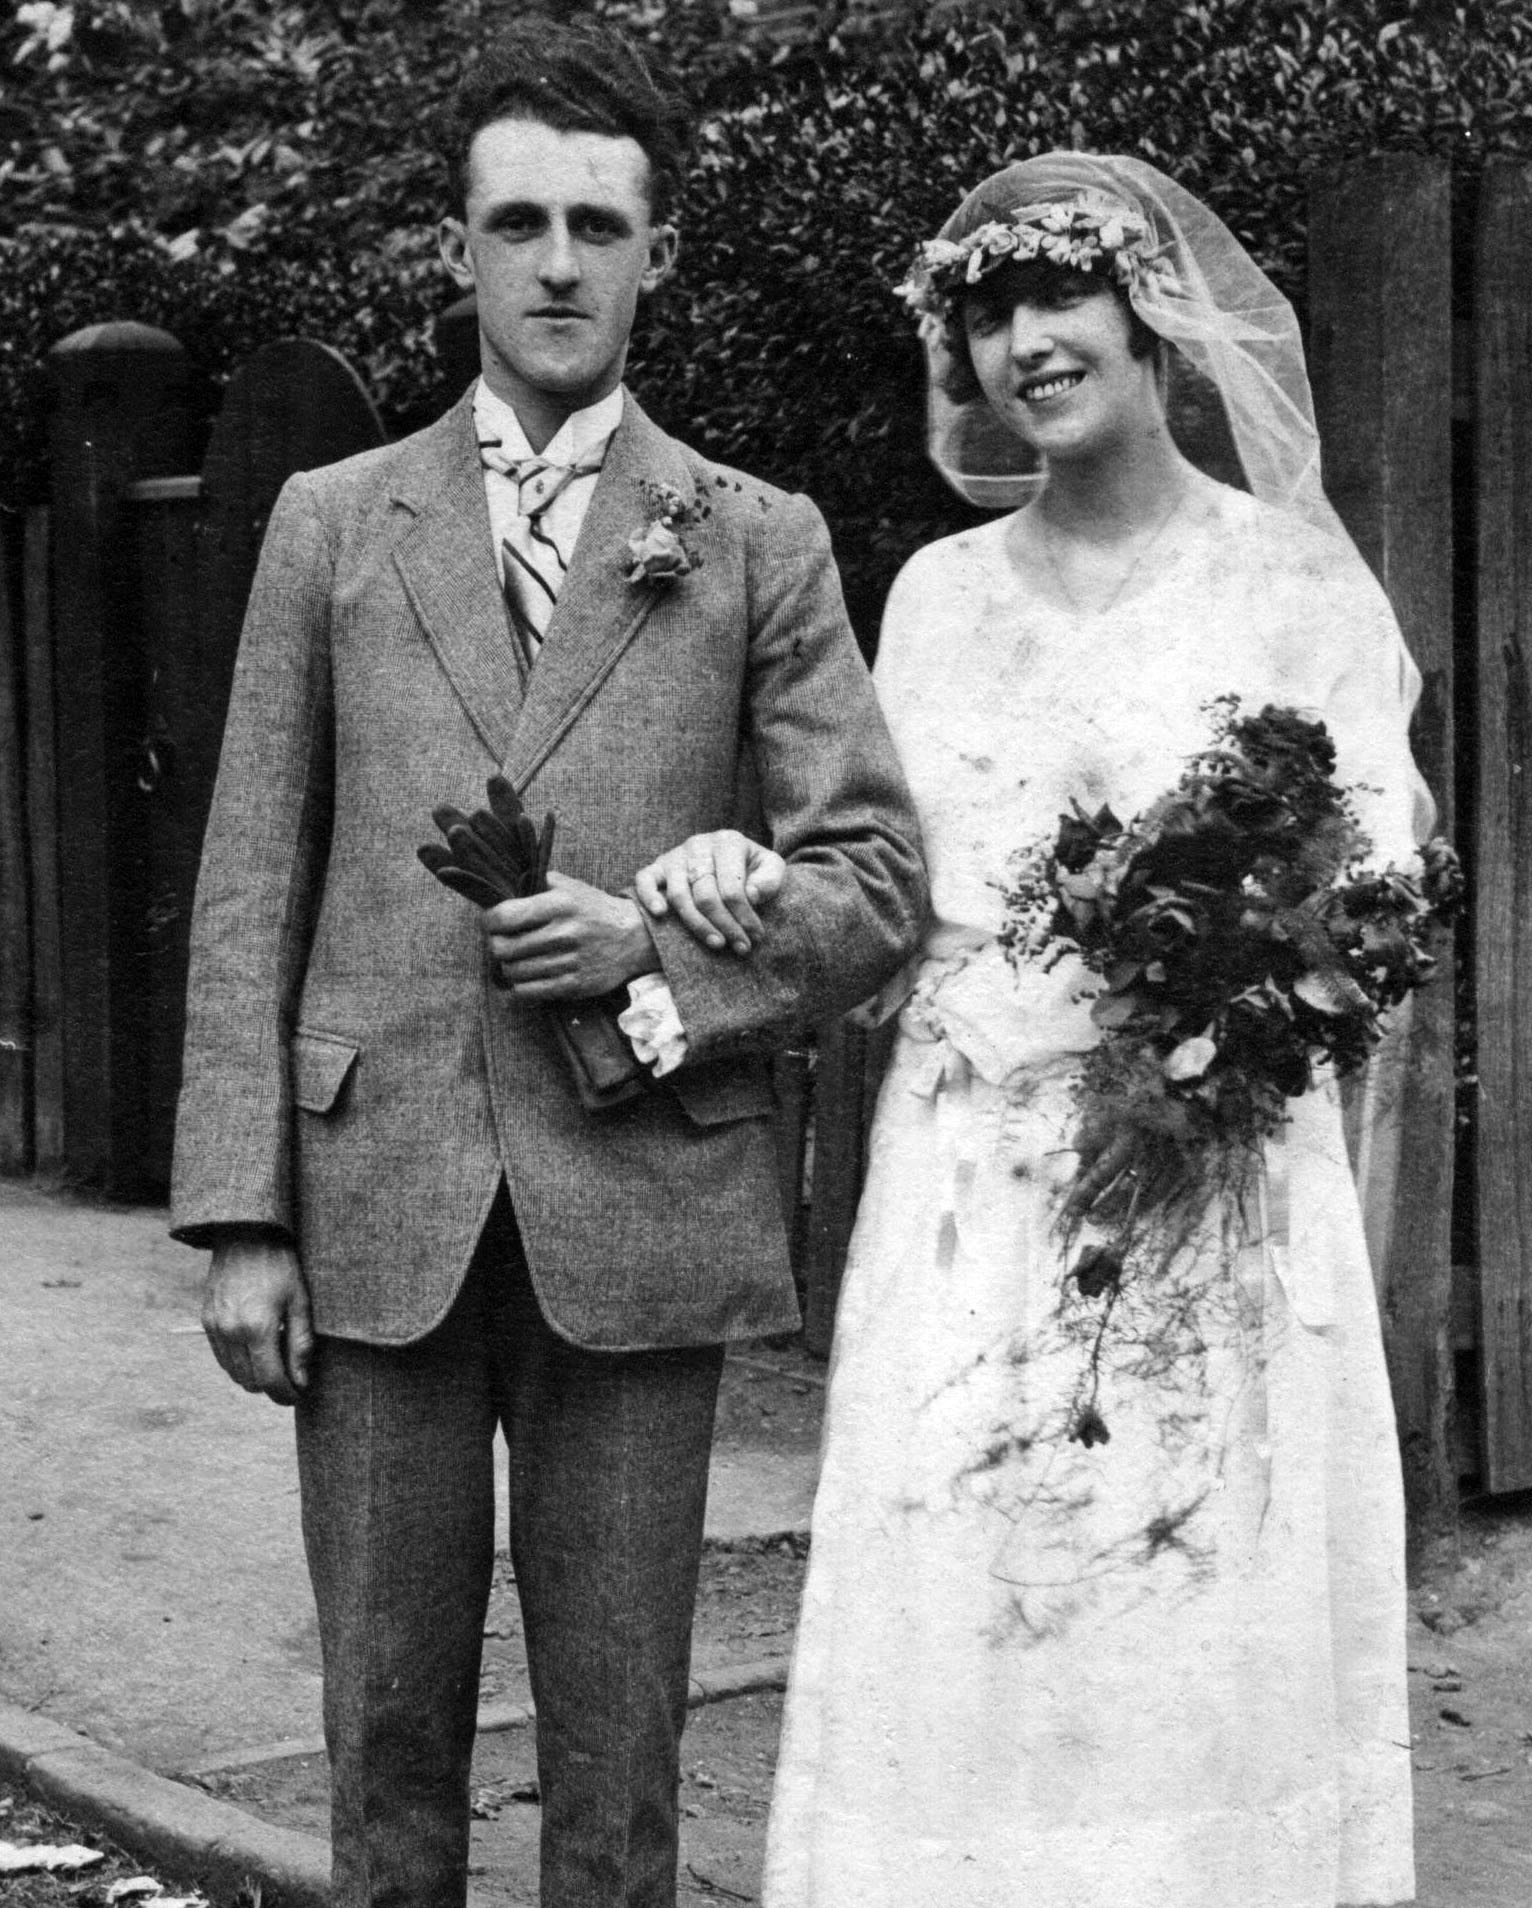 Tomas Wallbank & Ruth Ashley wedding 1922